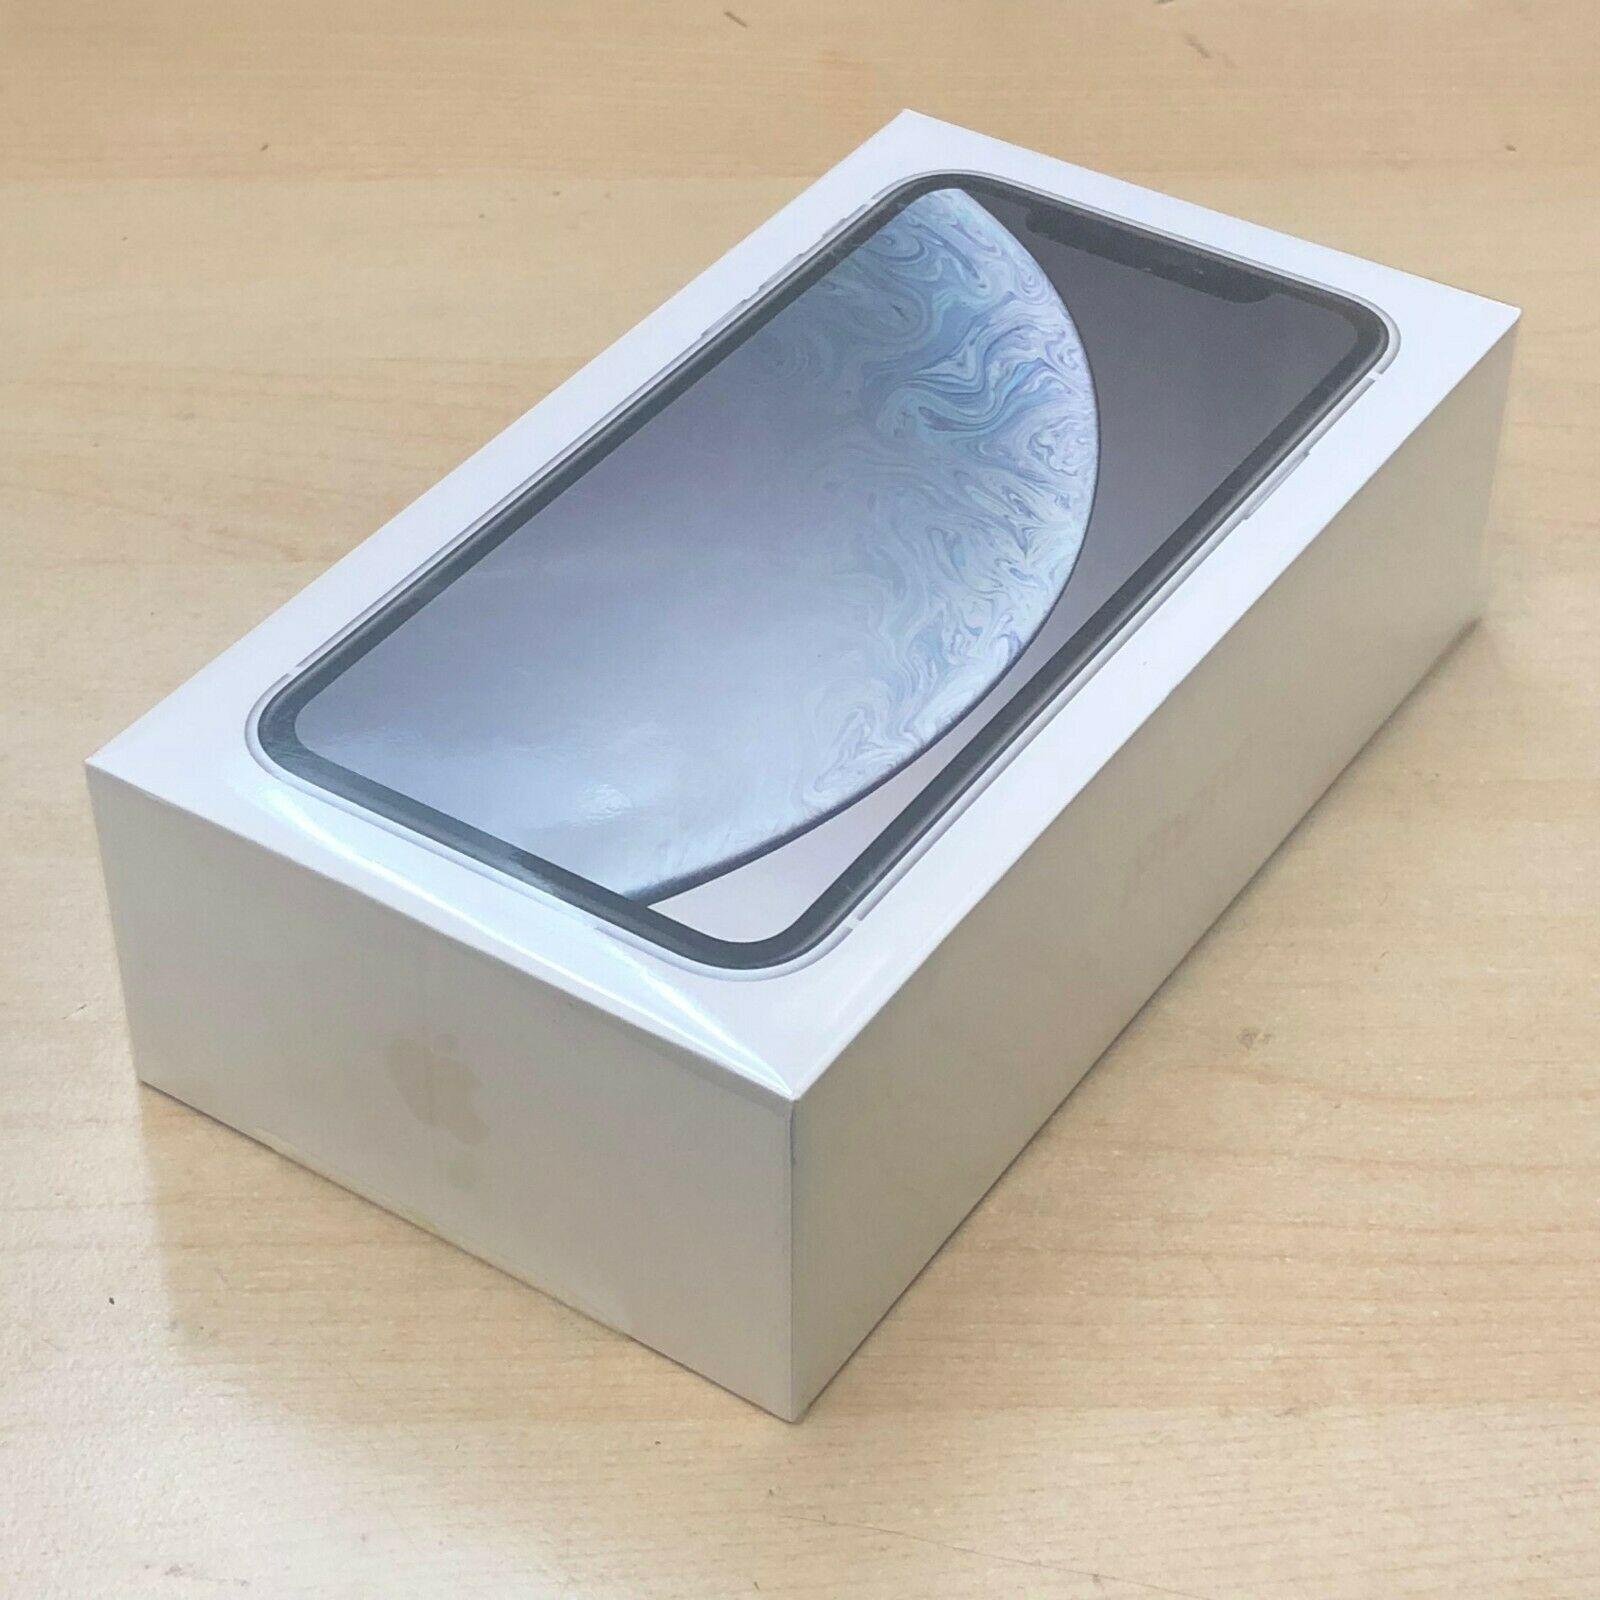 New Sealed Apple iPhone XR 64GB White AT&T A1984 CDMA GSM 1 Year Apple Warranty